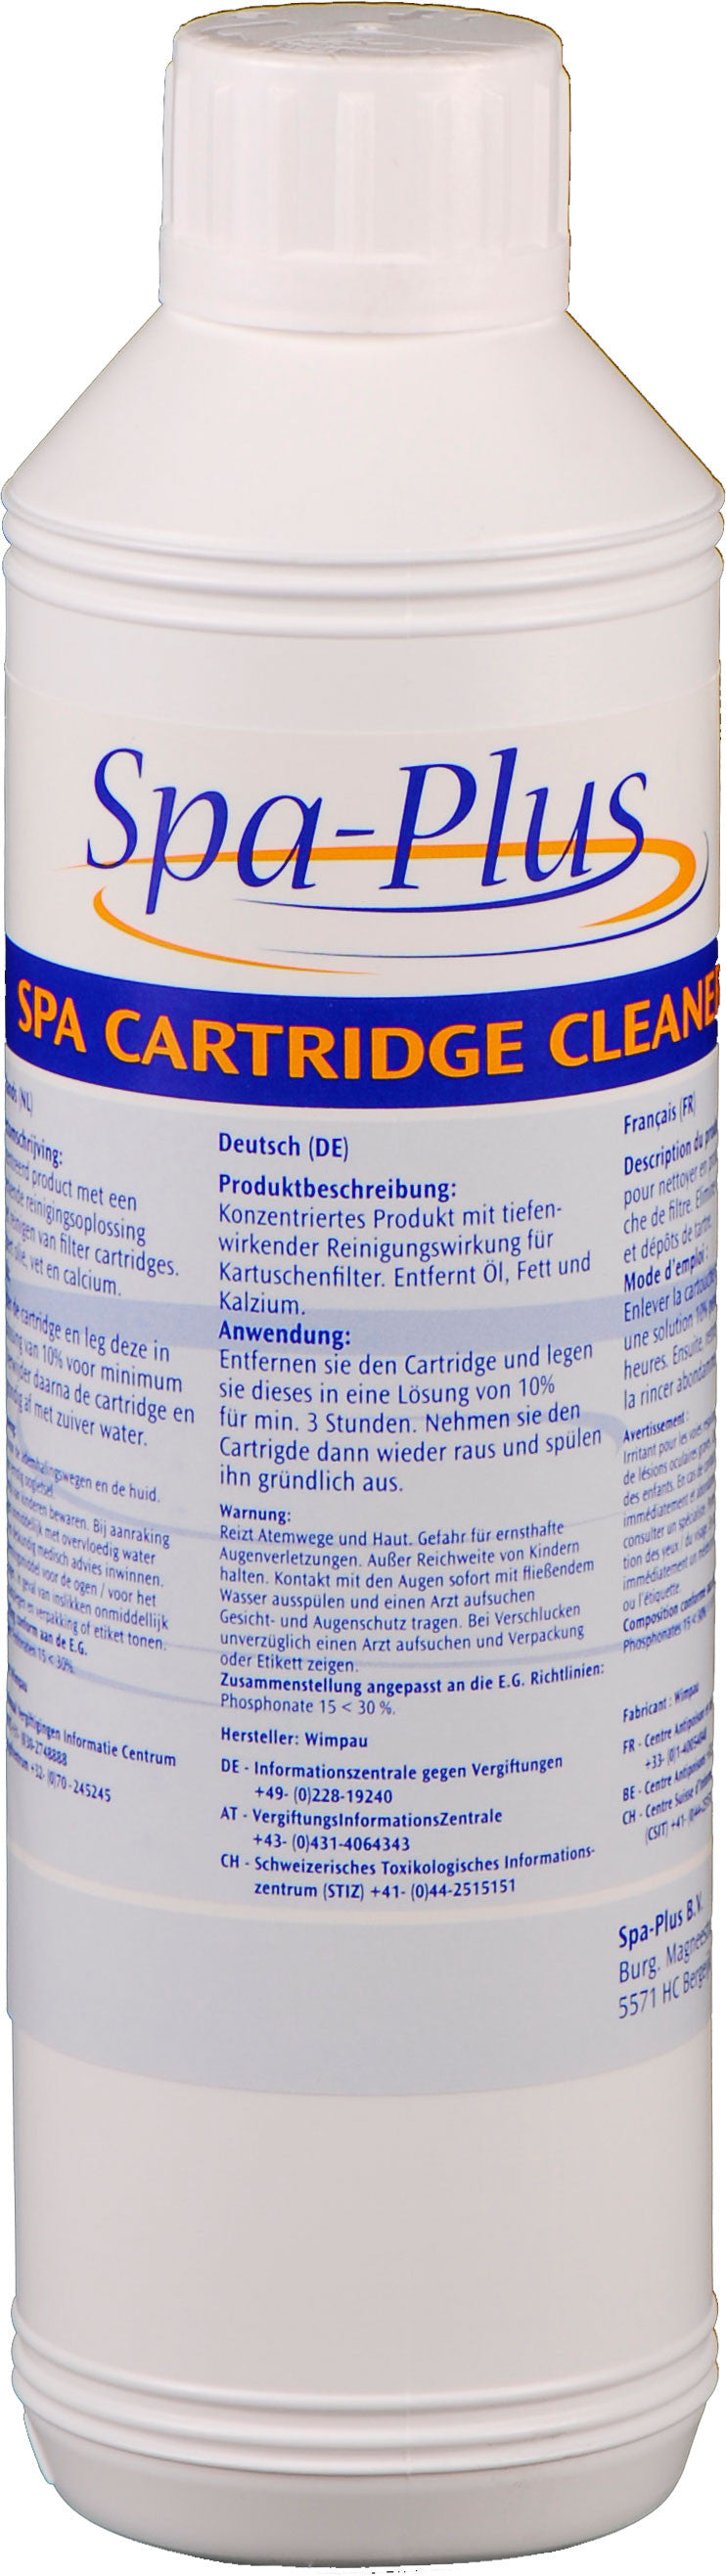 Spa Cartridge Cleaner - Jacuzzi-producten.nl